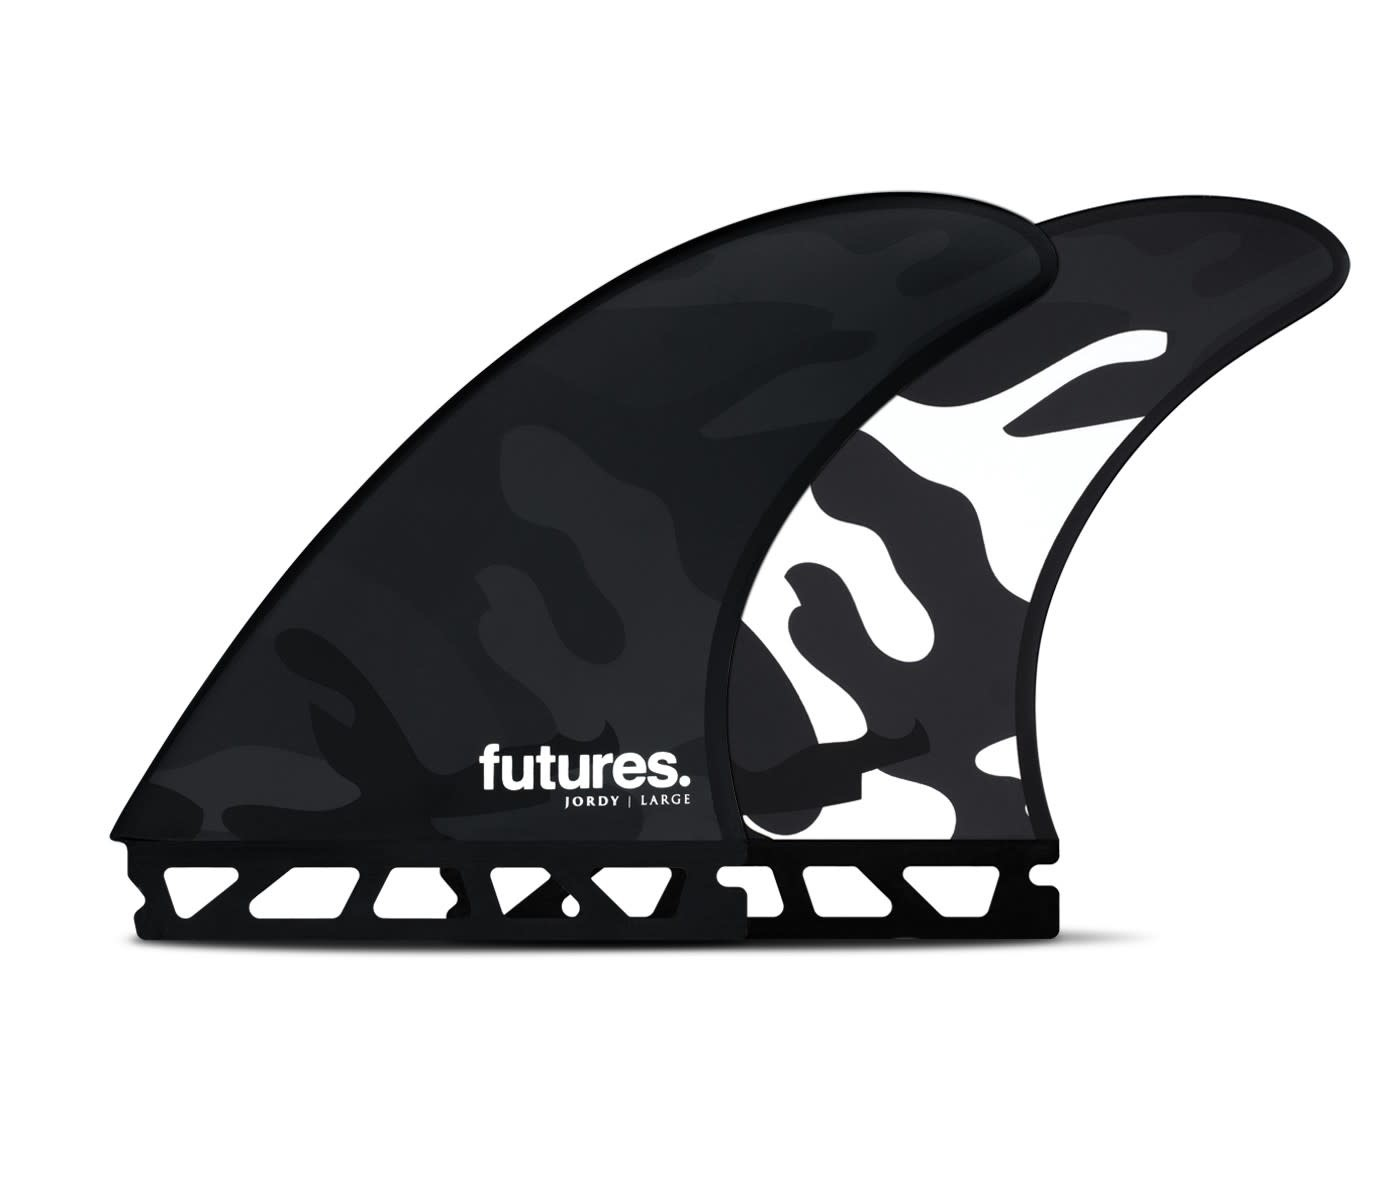 FUTURES JORDY LARGE HC THRUSTER BLACK/WHITE CAMO